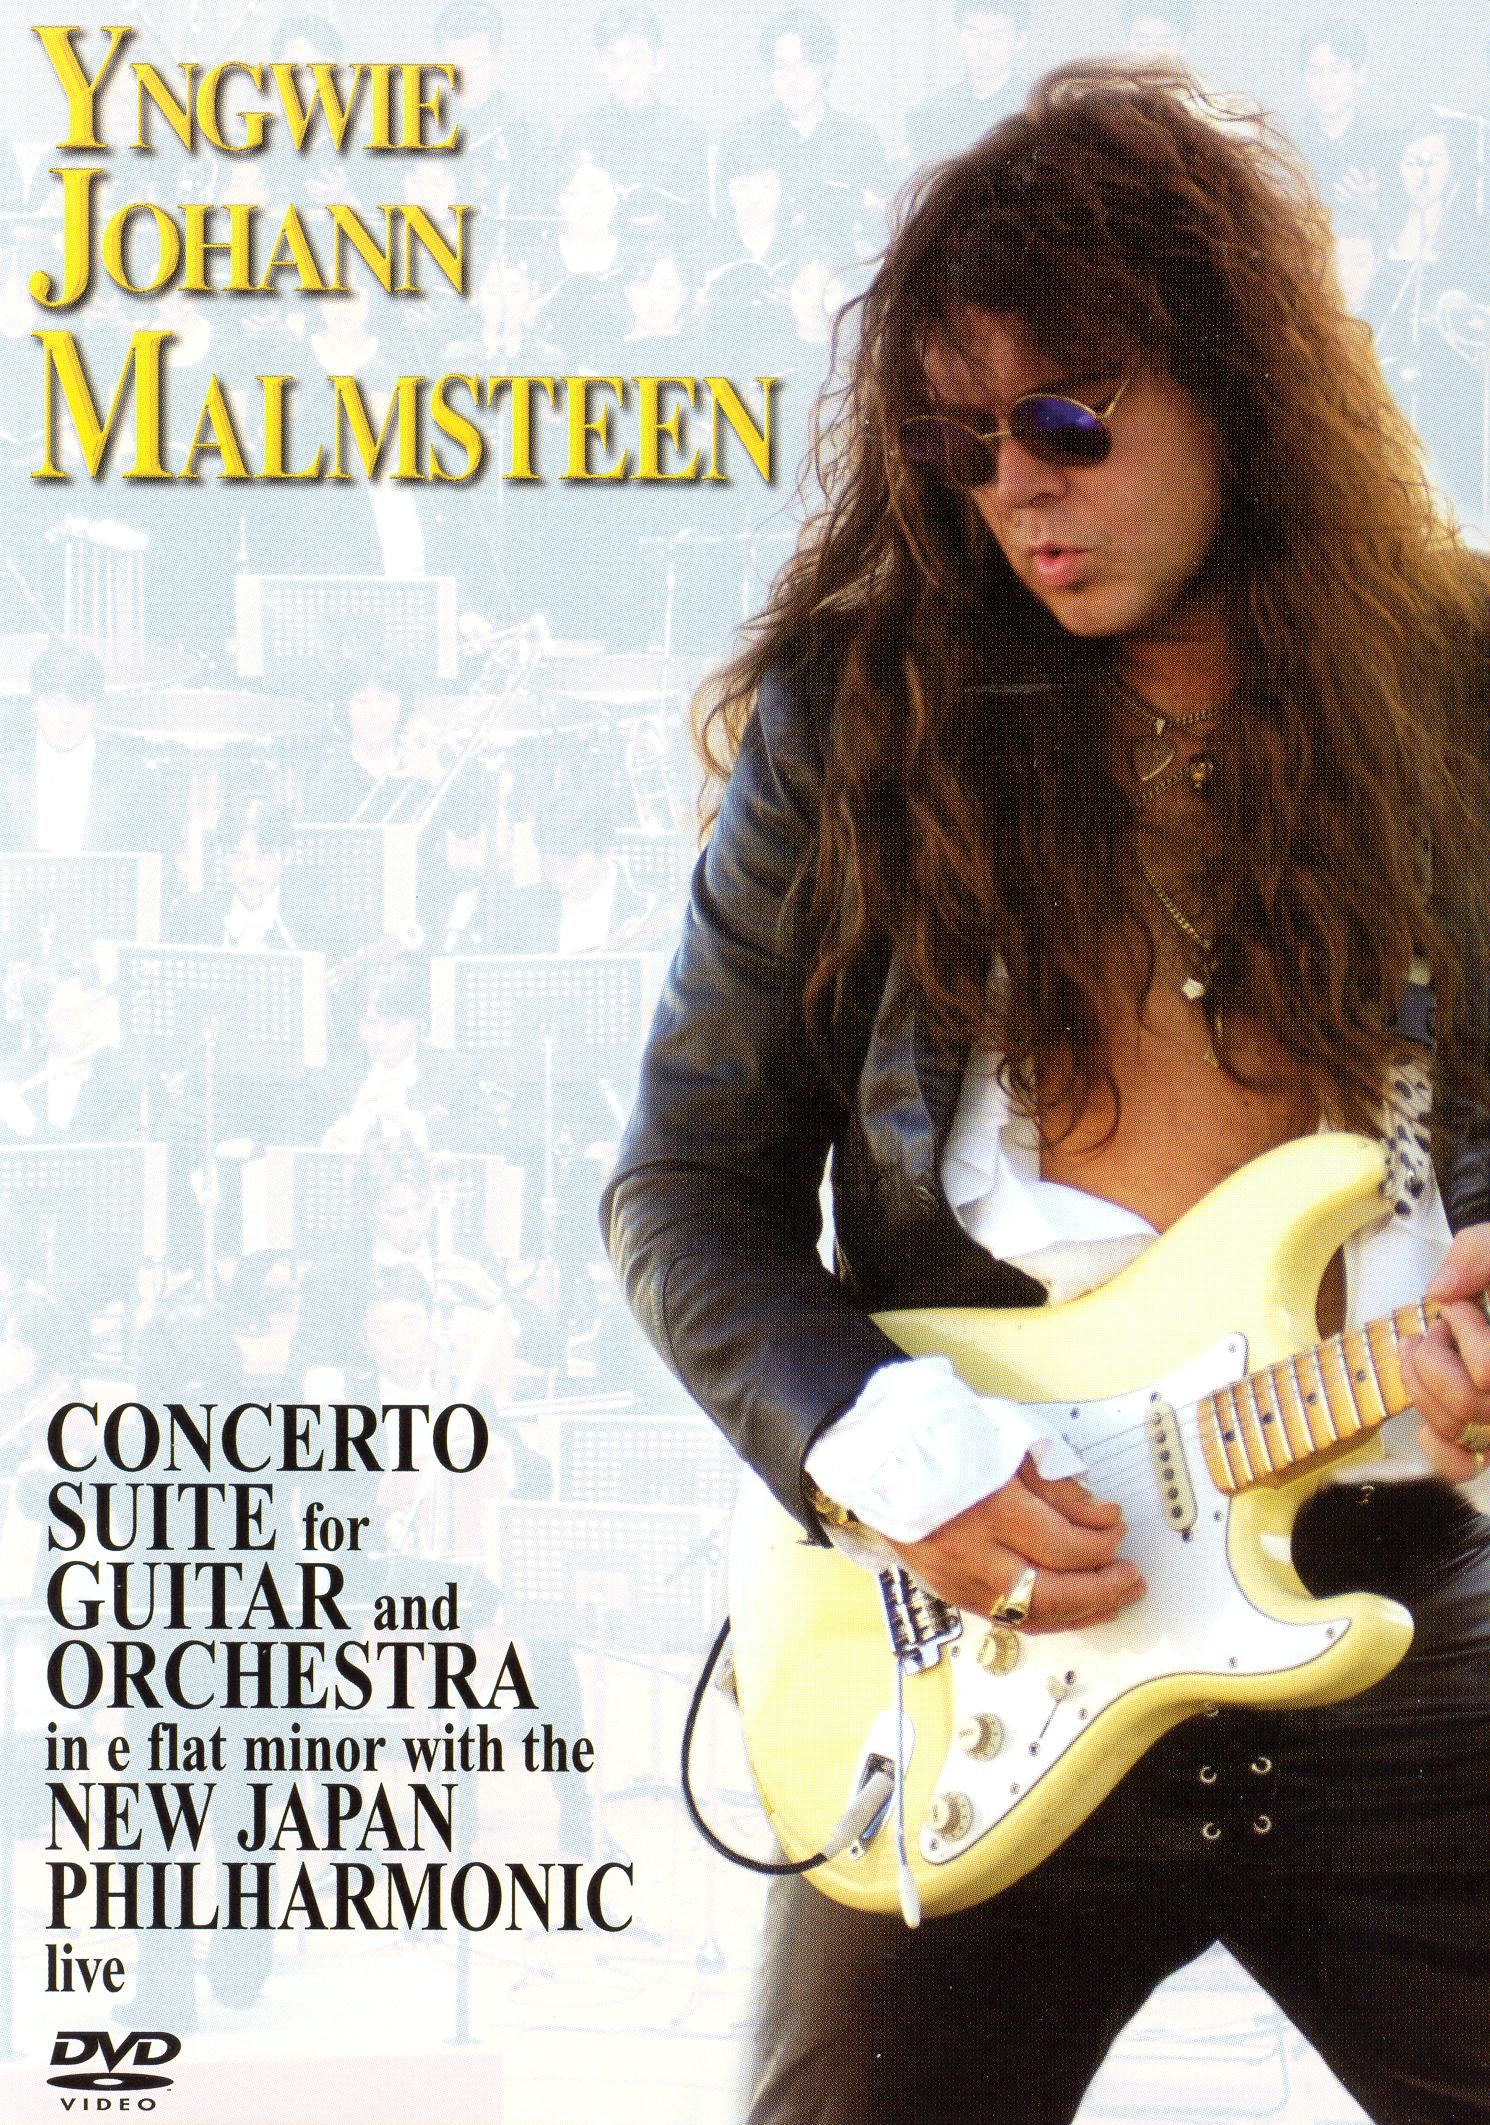 Yngwie Johann Malmsteen: Concerto Suite For Electric Guitar and Orchestra in E Flat Minor